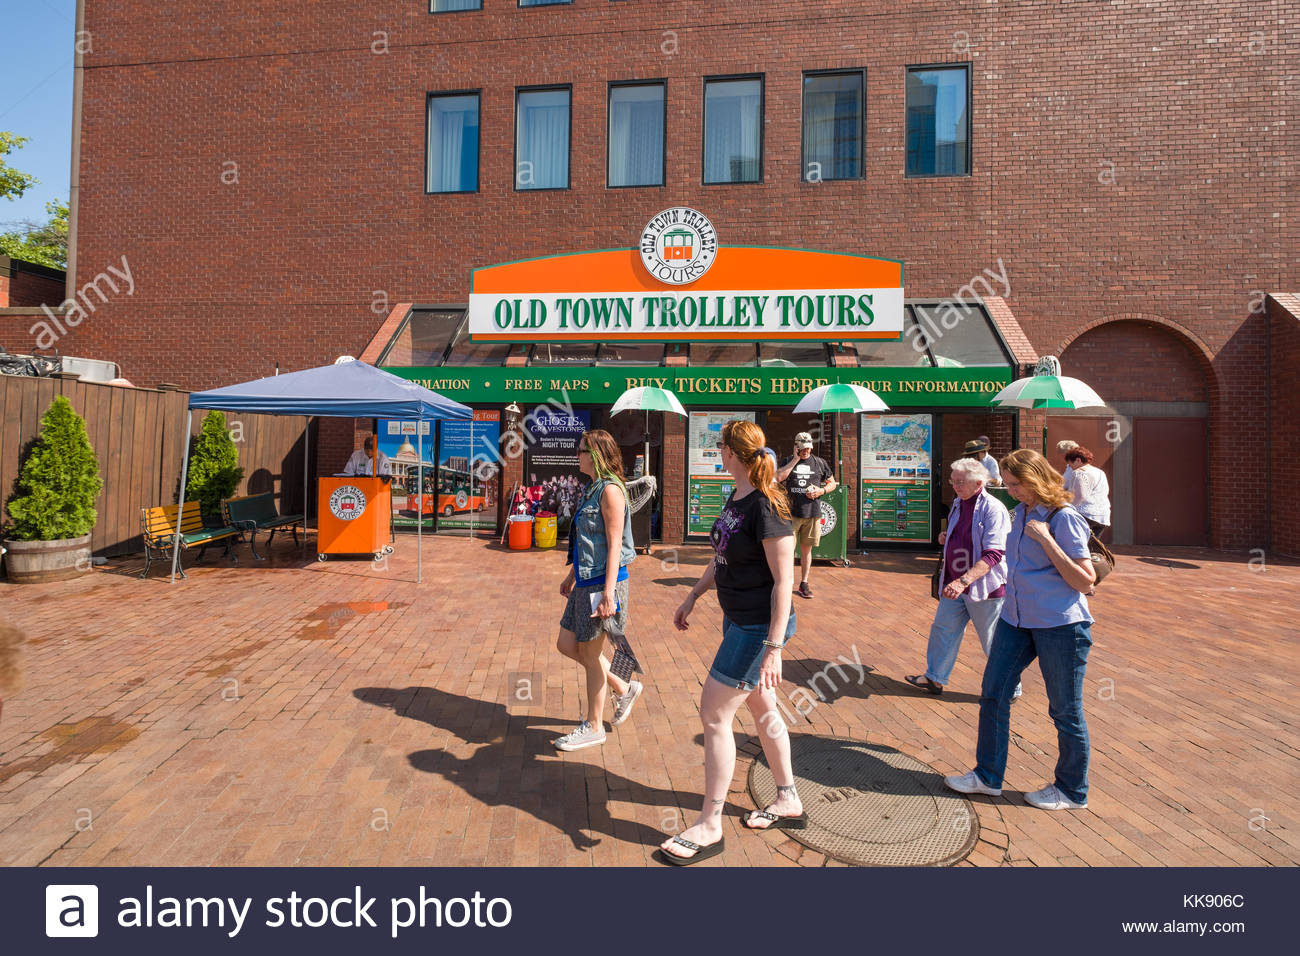 People Walking Past Old Town Trolley Tours Kiosk Boston Suffolk County Massachusetts